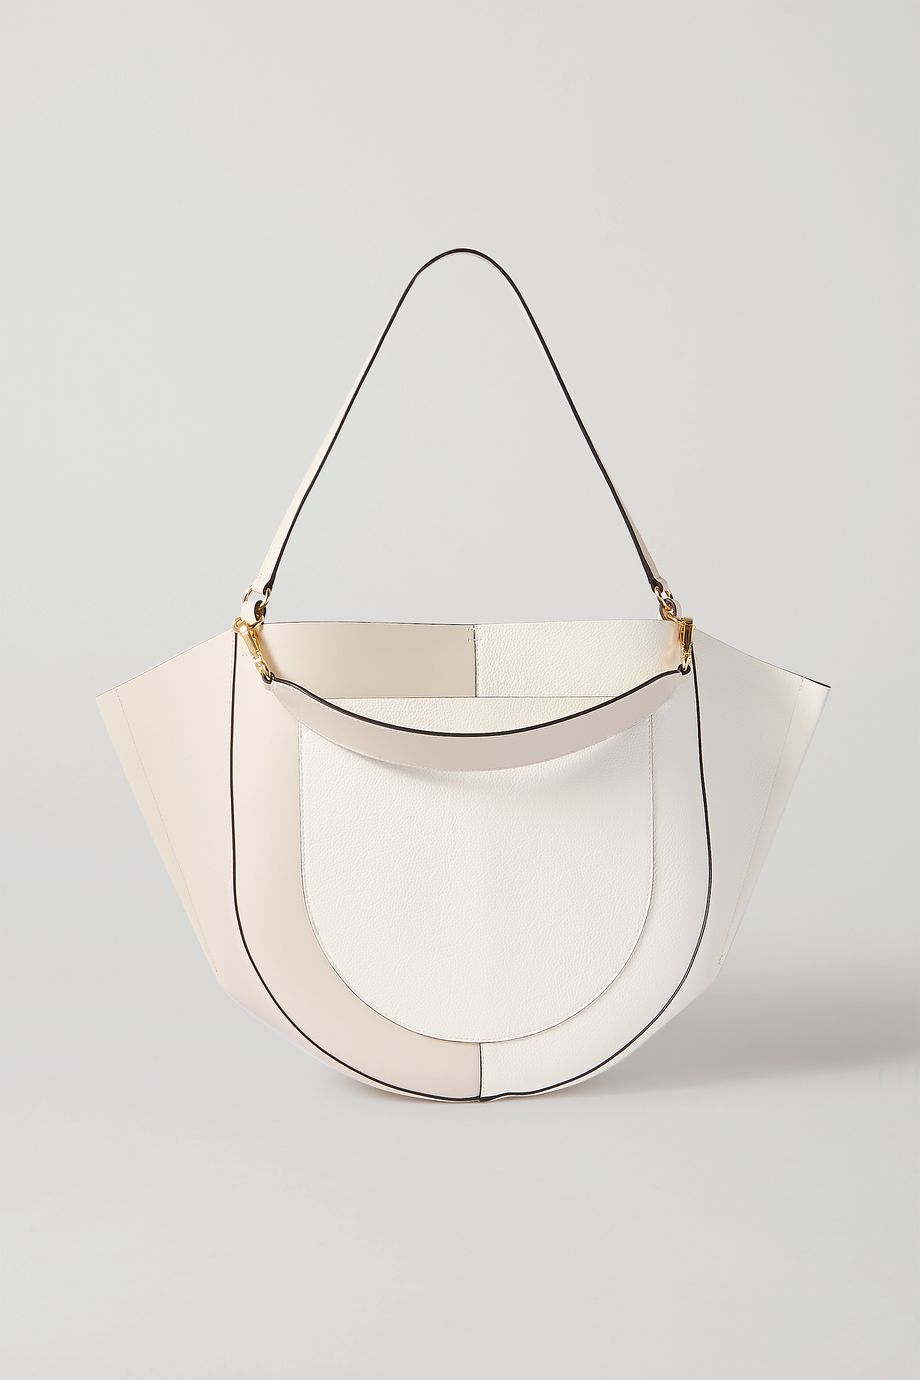 Wandler Mia large two-tone leather shoulder bag